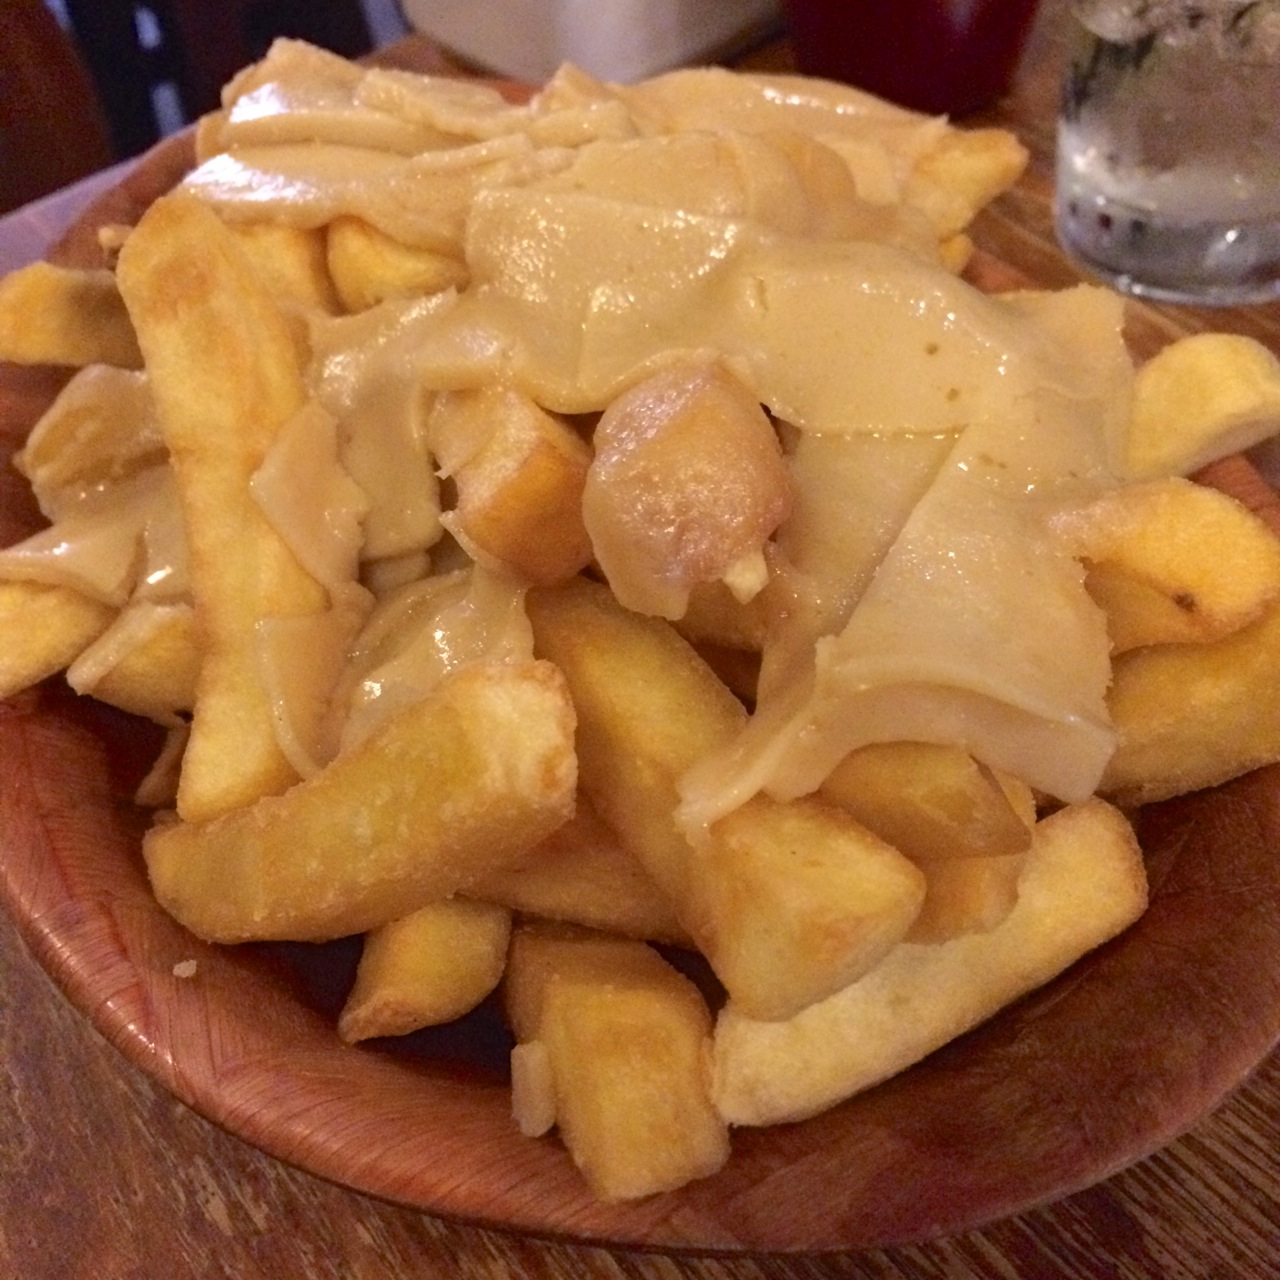 https://i2.wp.com/fatgayvegan.com/wp-content/uploads/2015/08/Vegan-chips-and-cheese.jpg?fit=1280%2C1280